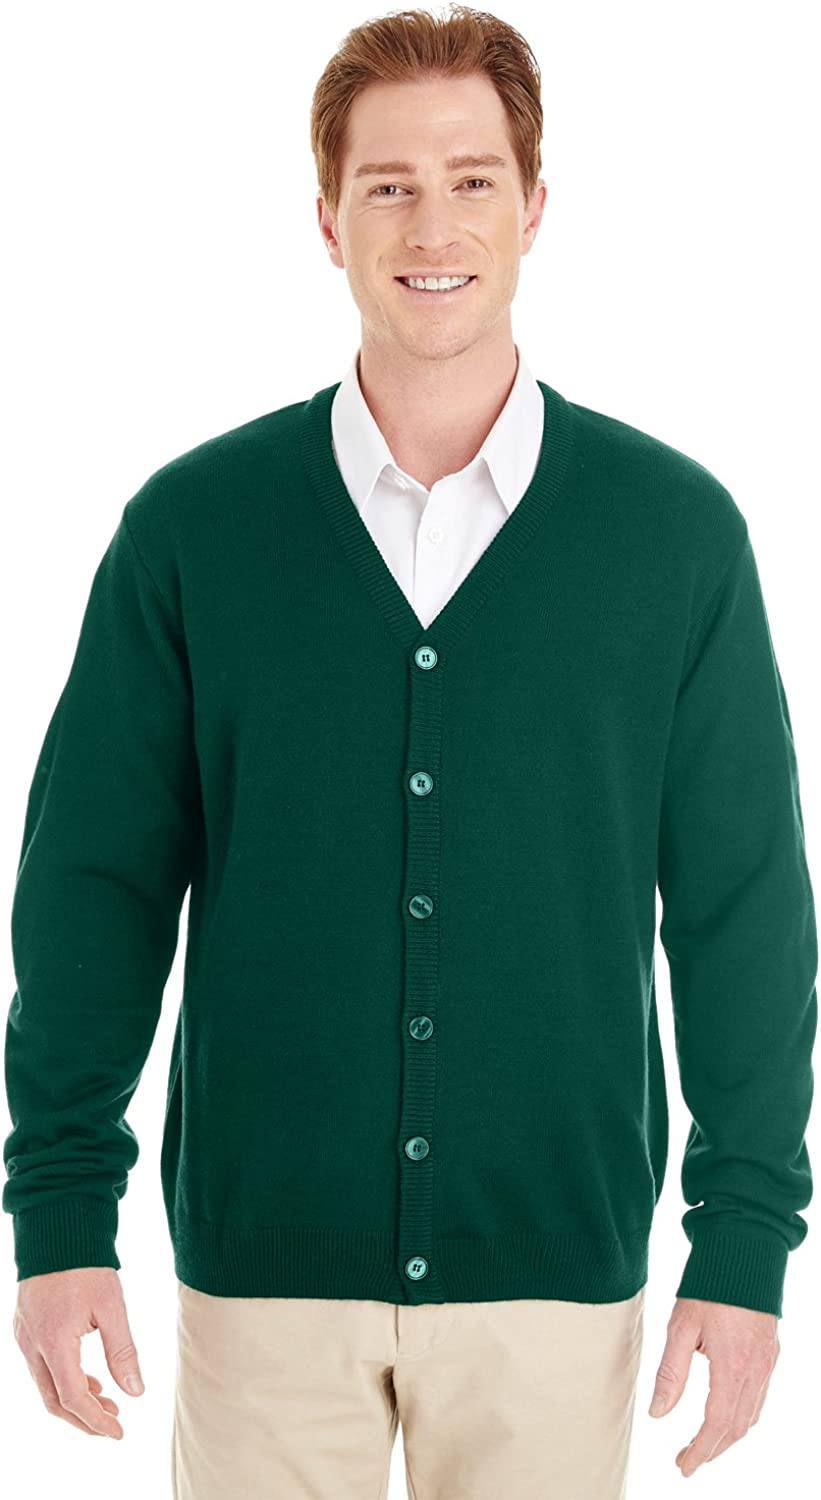 Men's Vintage Sweaters, Retro Jumpers 1920s to 1980s Harriton Pilbloc V-Neck Button Cardigan Sweater (M425) $40.02 AT vintagedancer.com